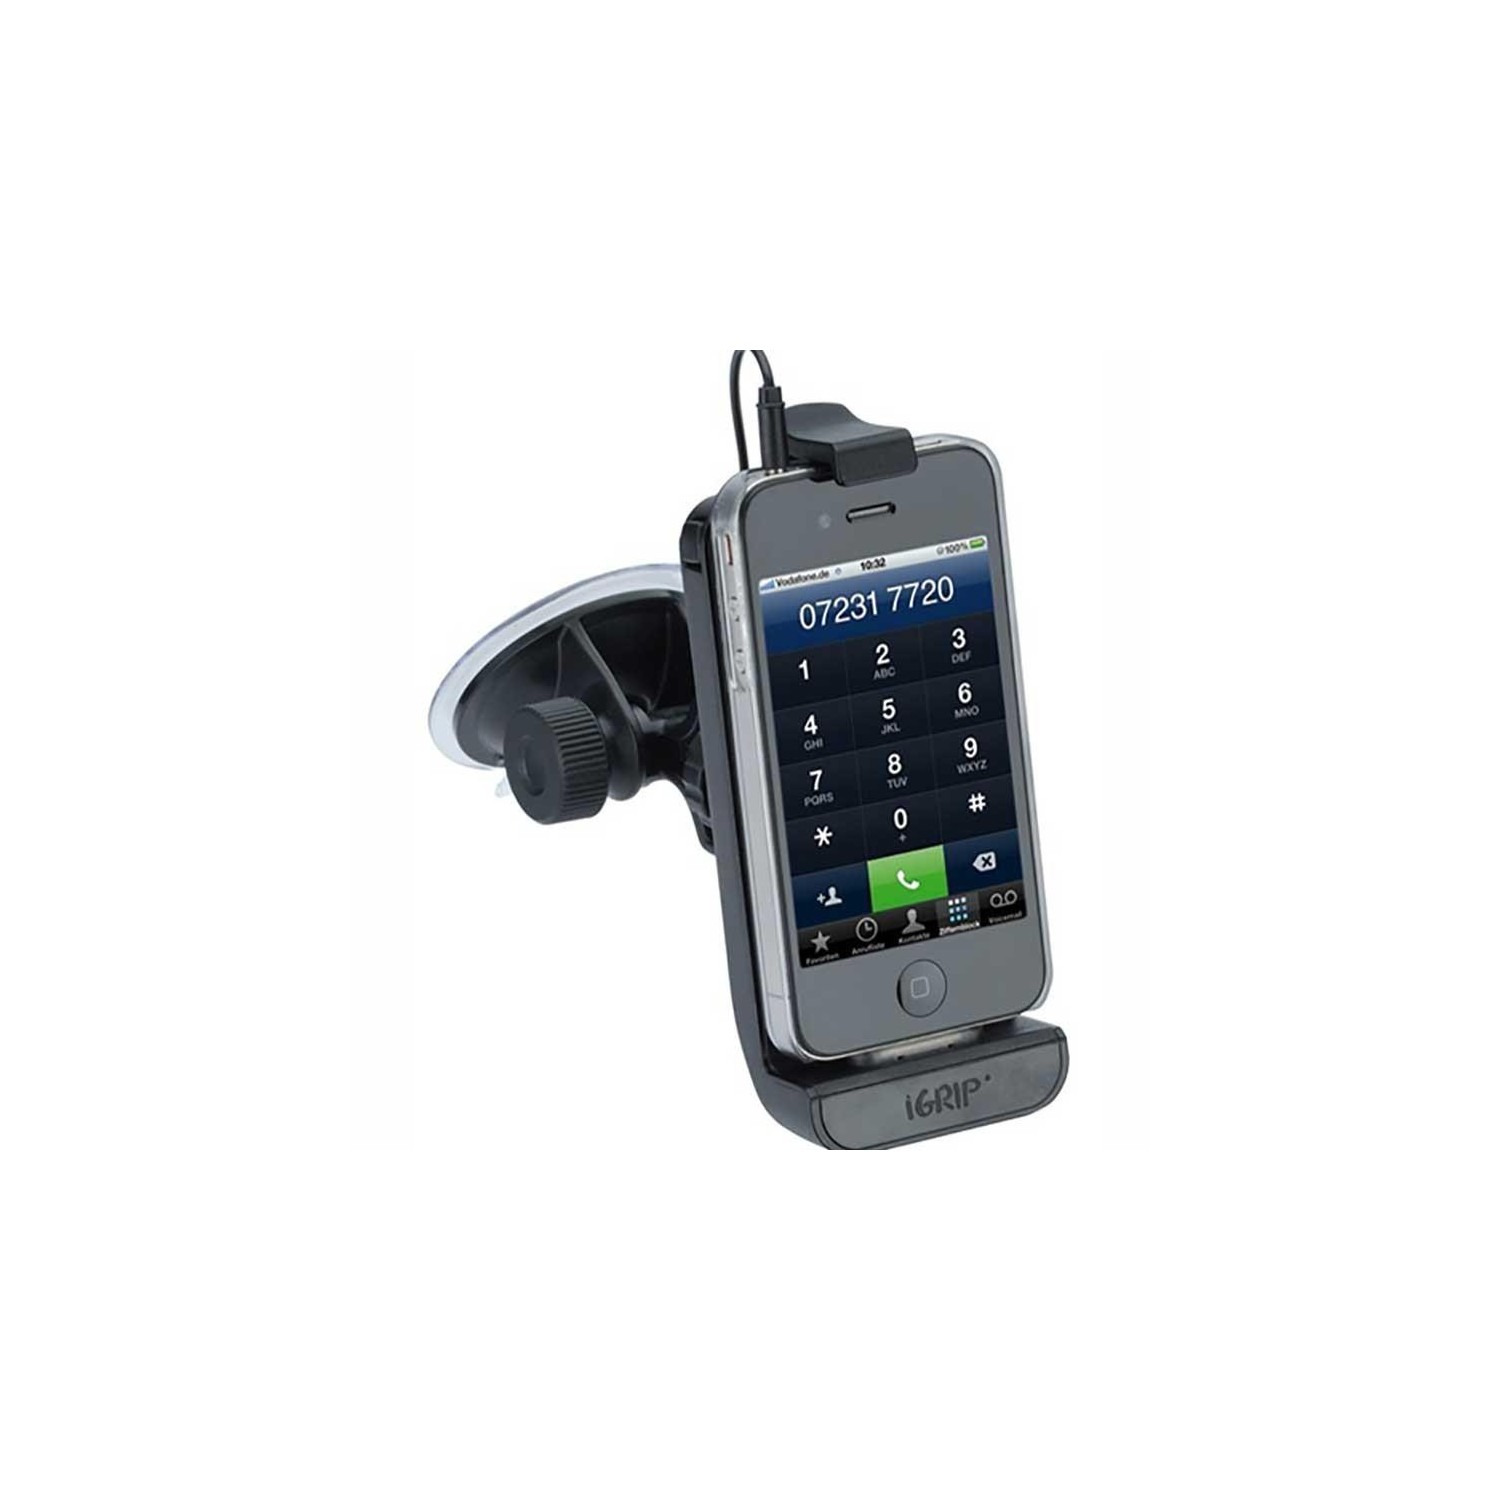 Holder & Charge Grip for iPhone 3 4 4S and iPod